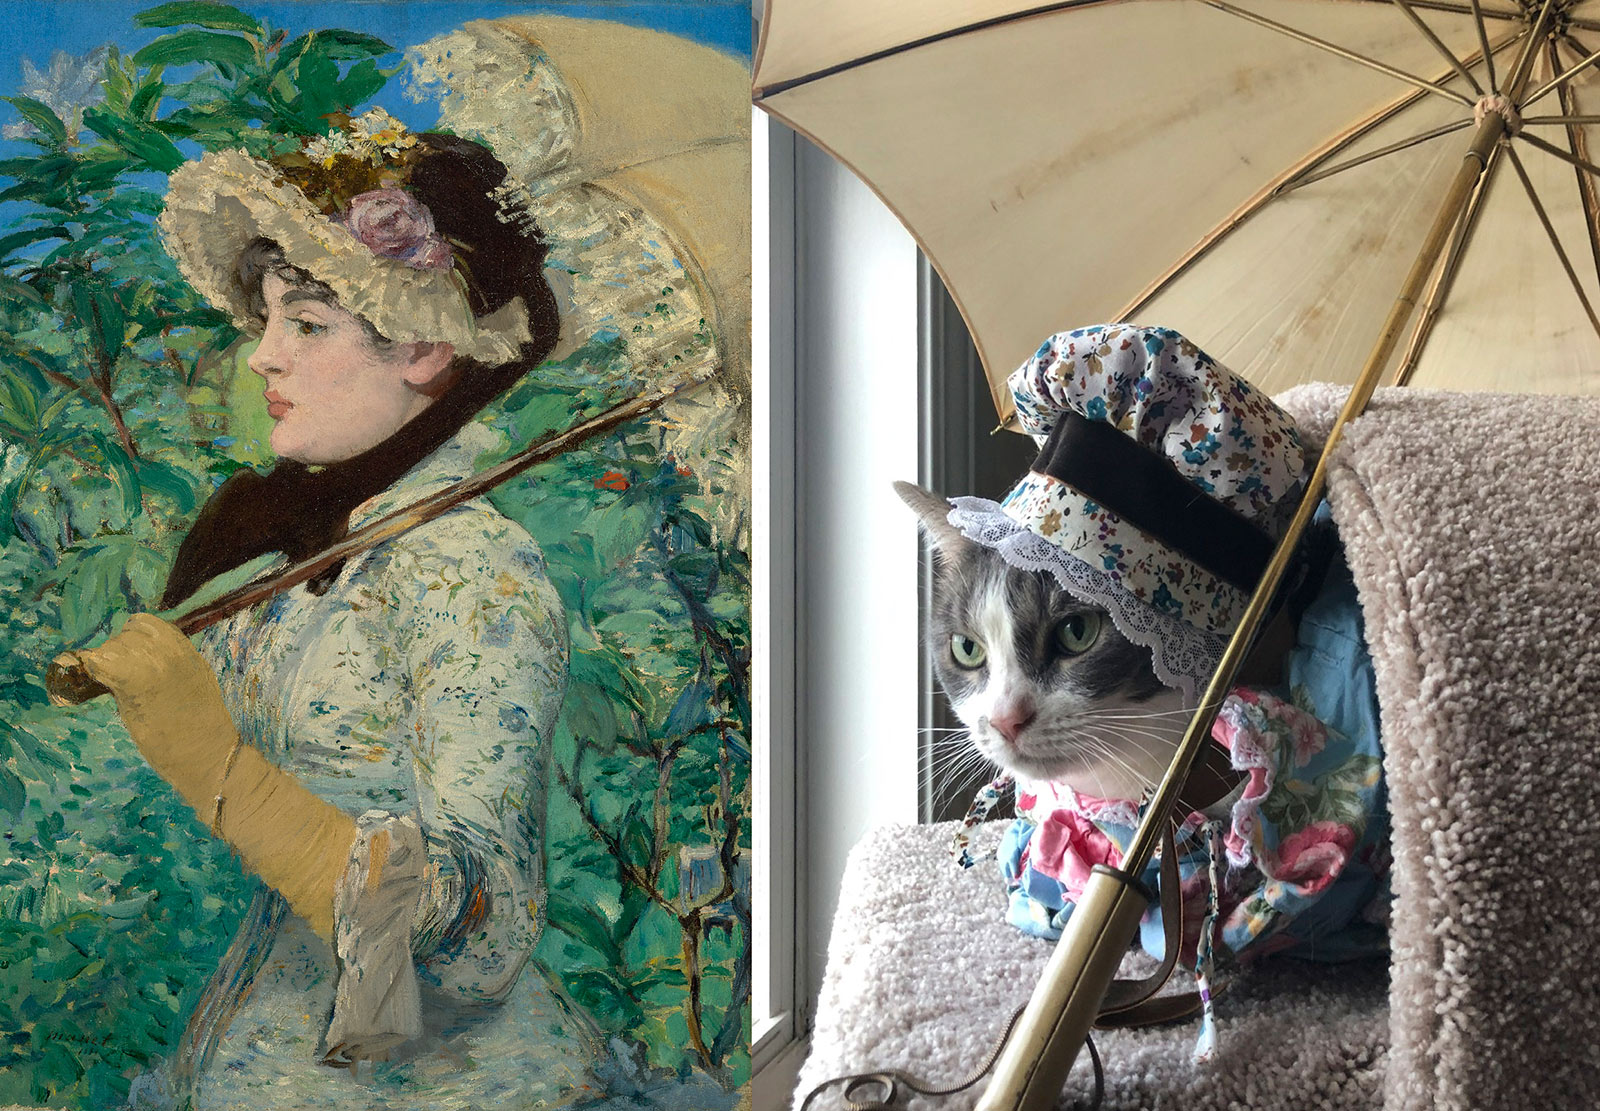 Side-by-side image showing a colorful portrait of a woman holding a parasol and a cat posed to re-create the same scene